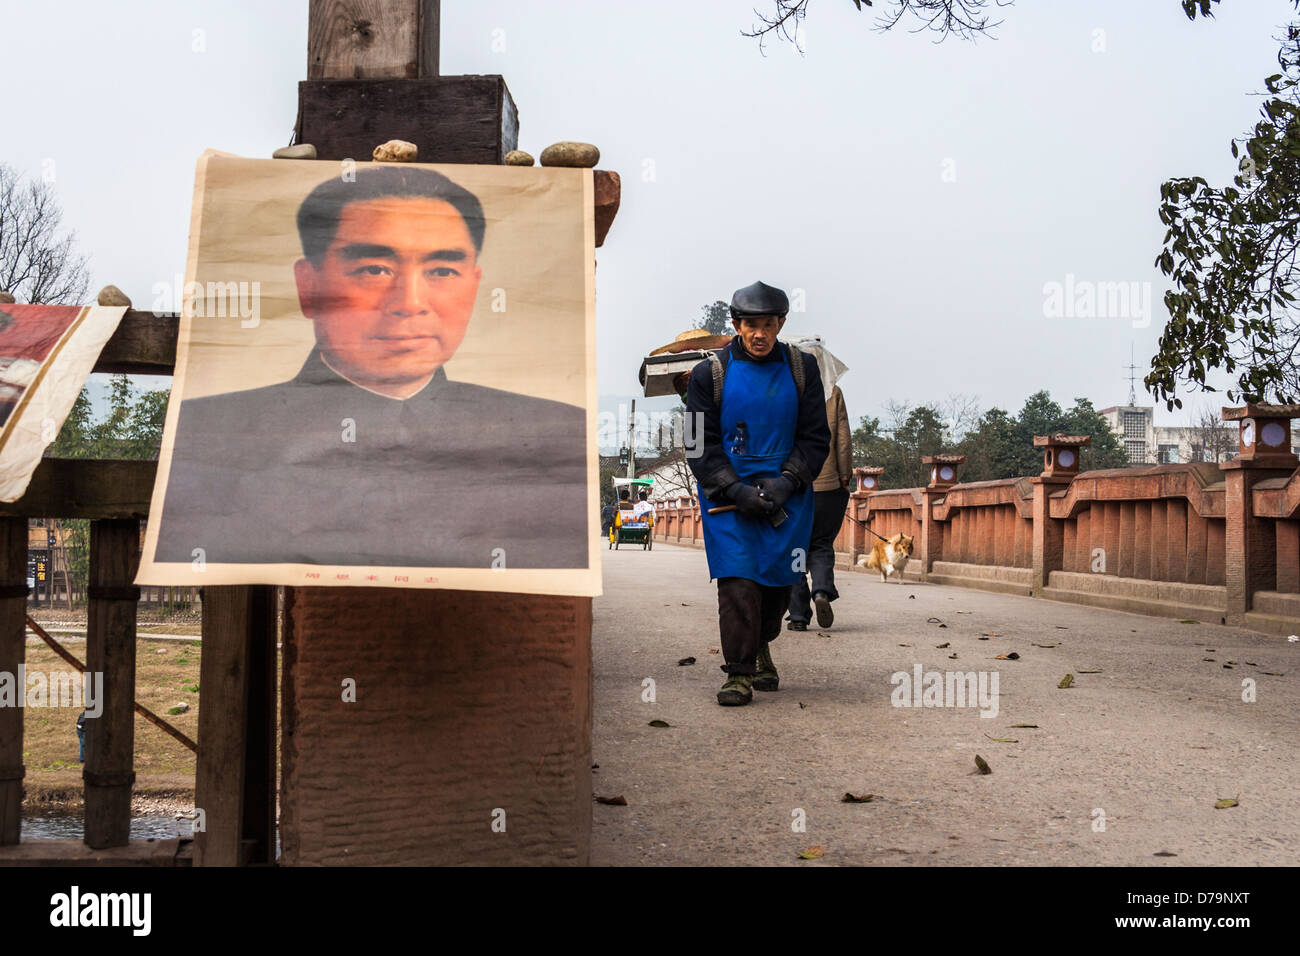 Chinese craftsman walking on a bridge with old Mao posters sold as souvenirs at Pingle village, near Chengdu, Sichuan, - Stock Image